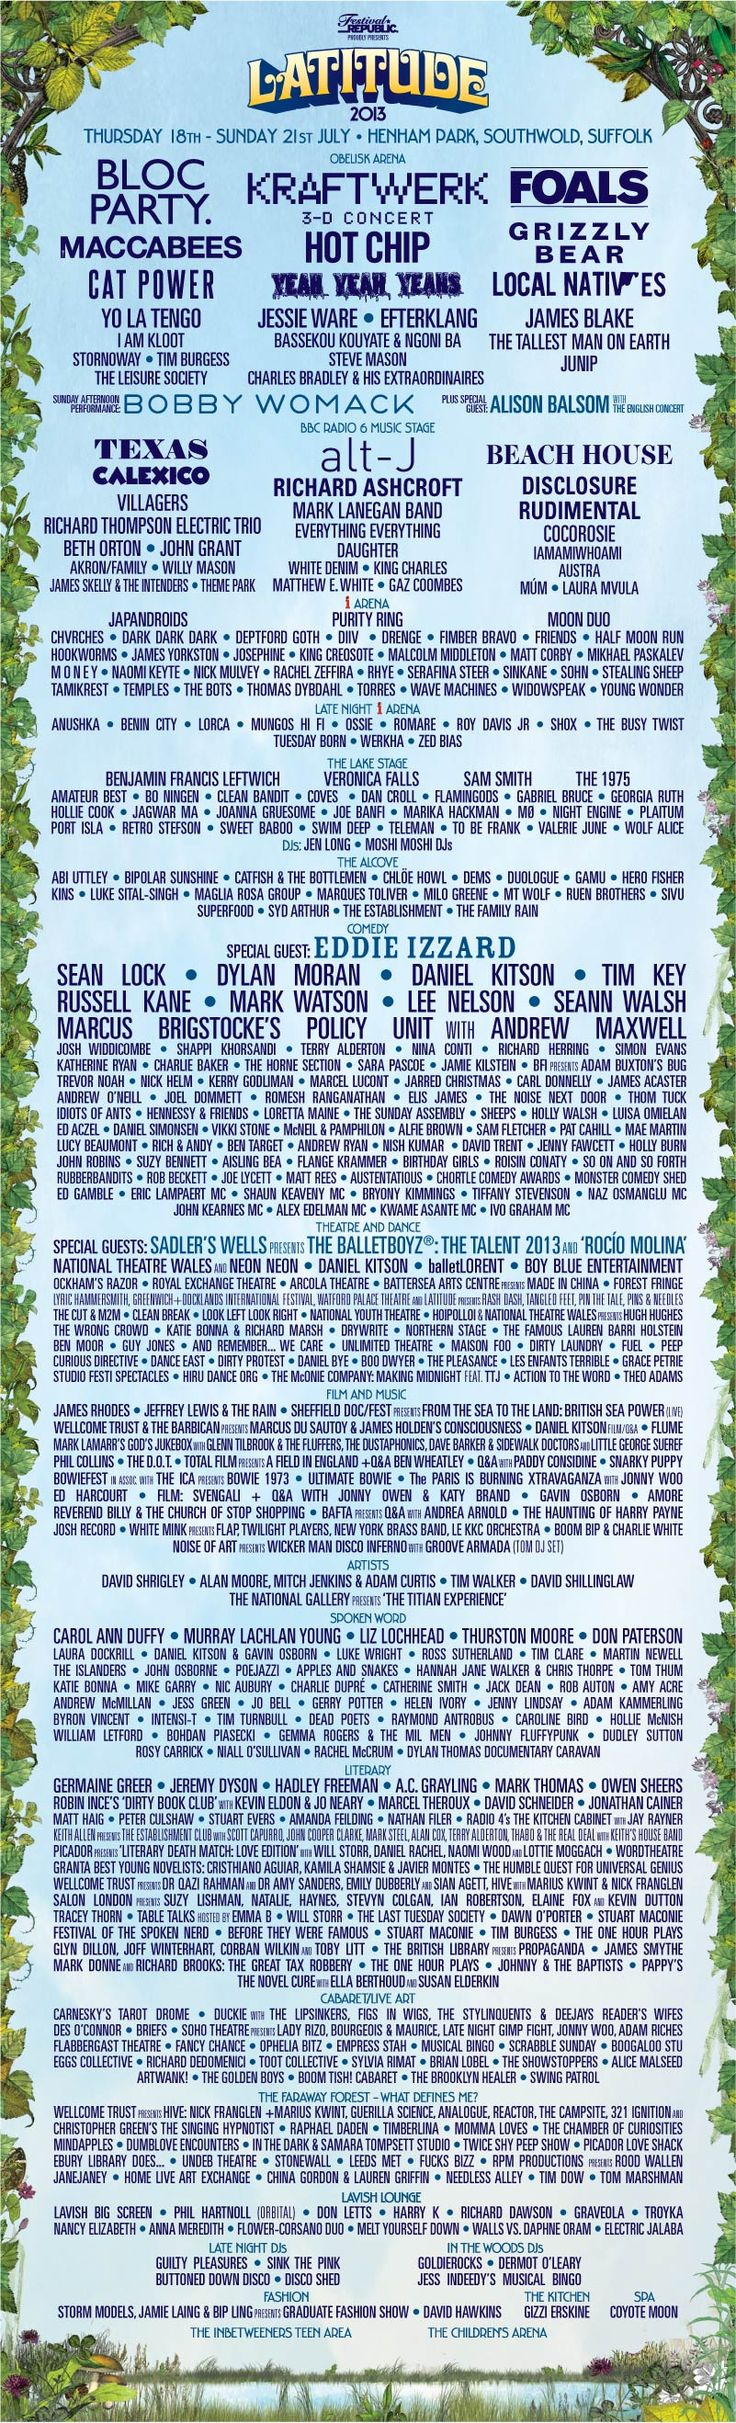 Latitude Festival 2013 Line-Up Look closely and you'll find Mindapples!